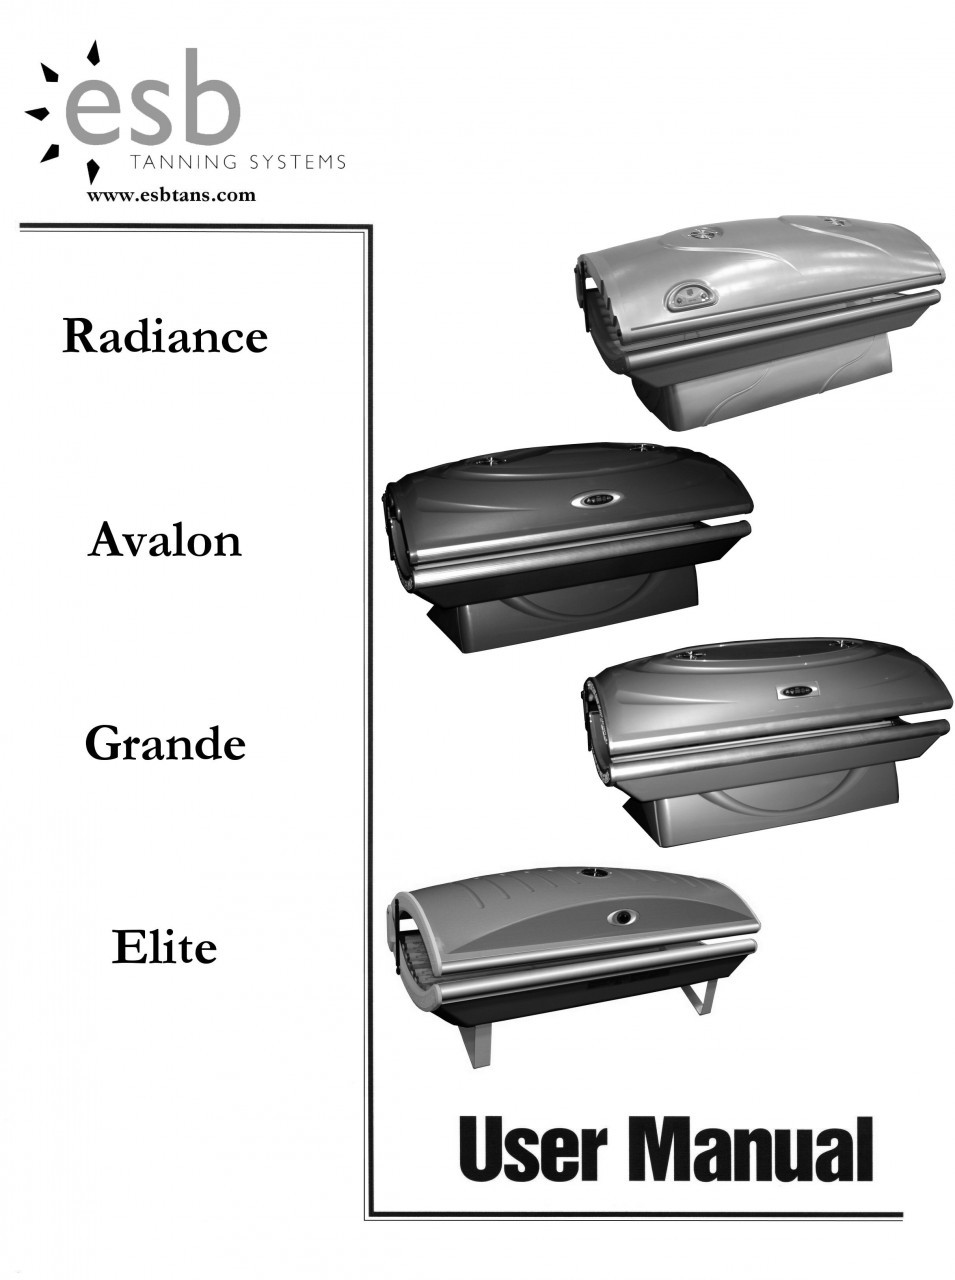 Tanning Bed Manual Esb Parts Info Wiring Diagram For Image 1